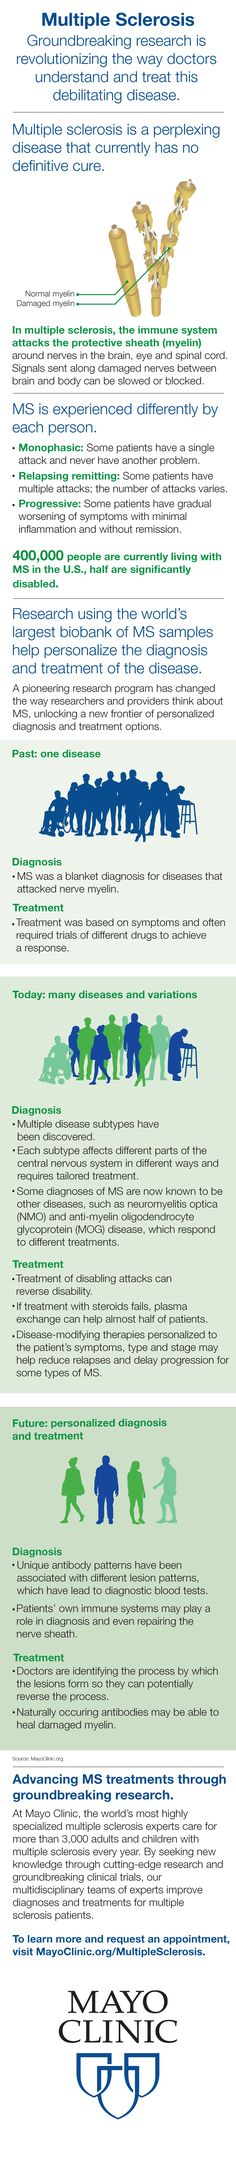 Groundbreaking research is revolutionizing the way doctors understand and treat multiple sclerosis.